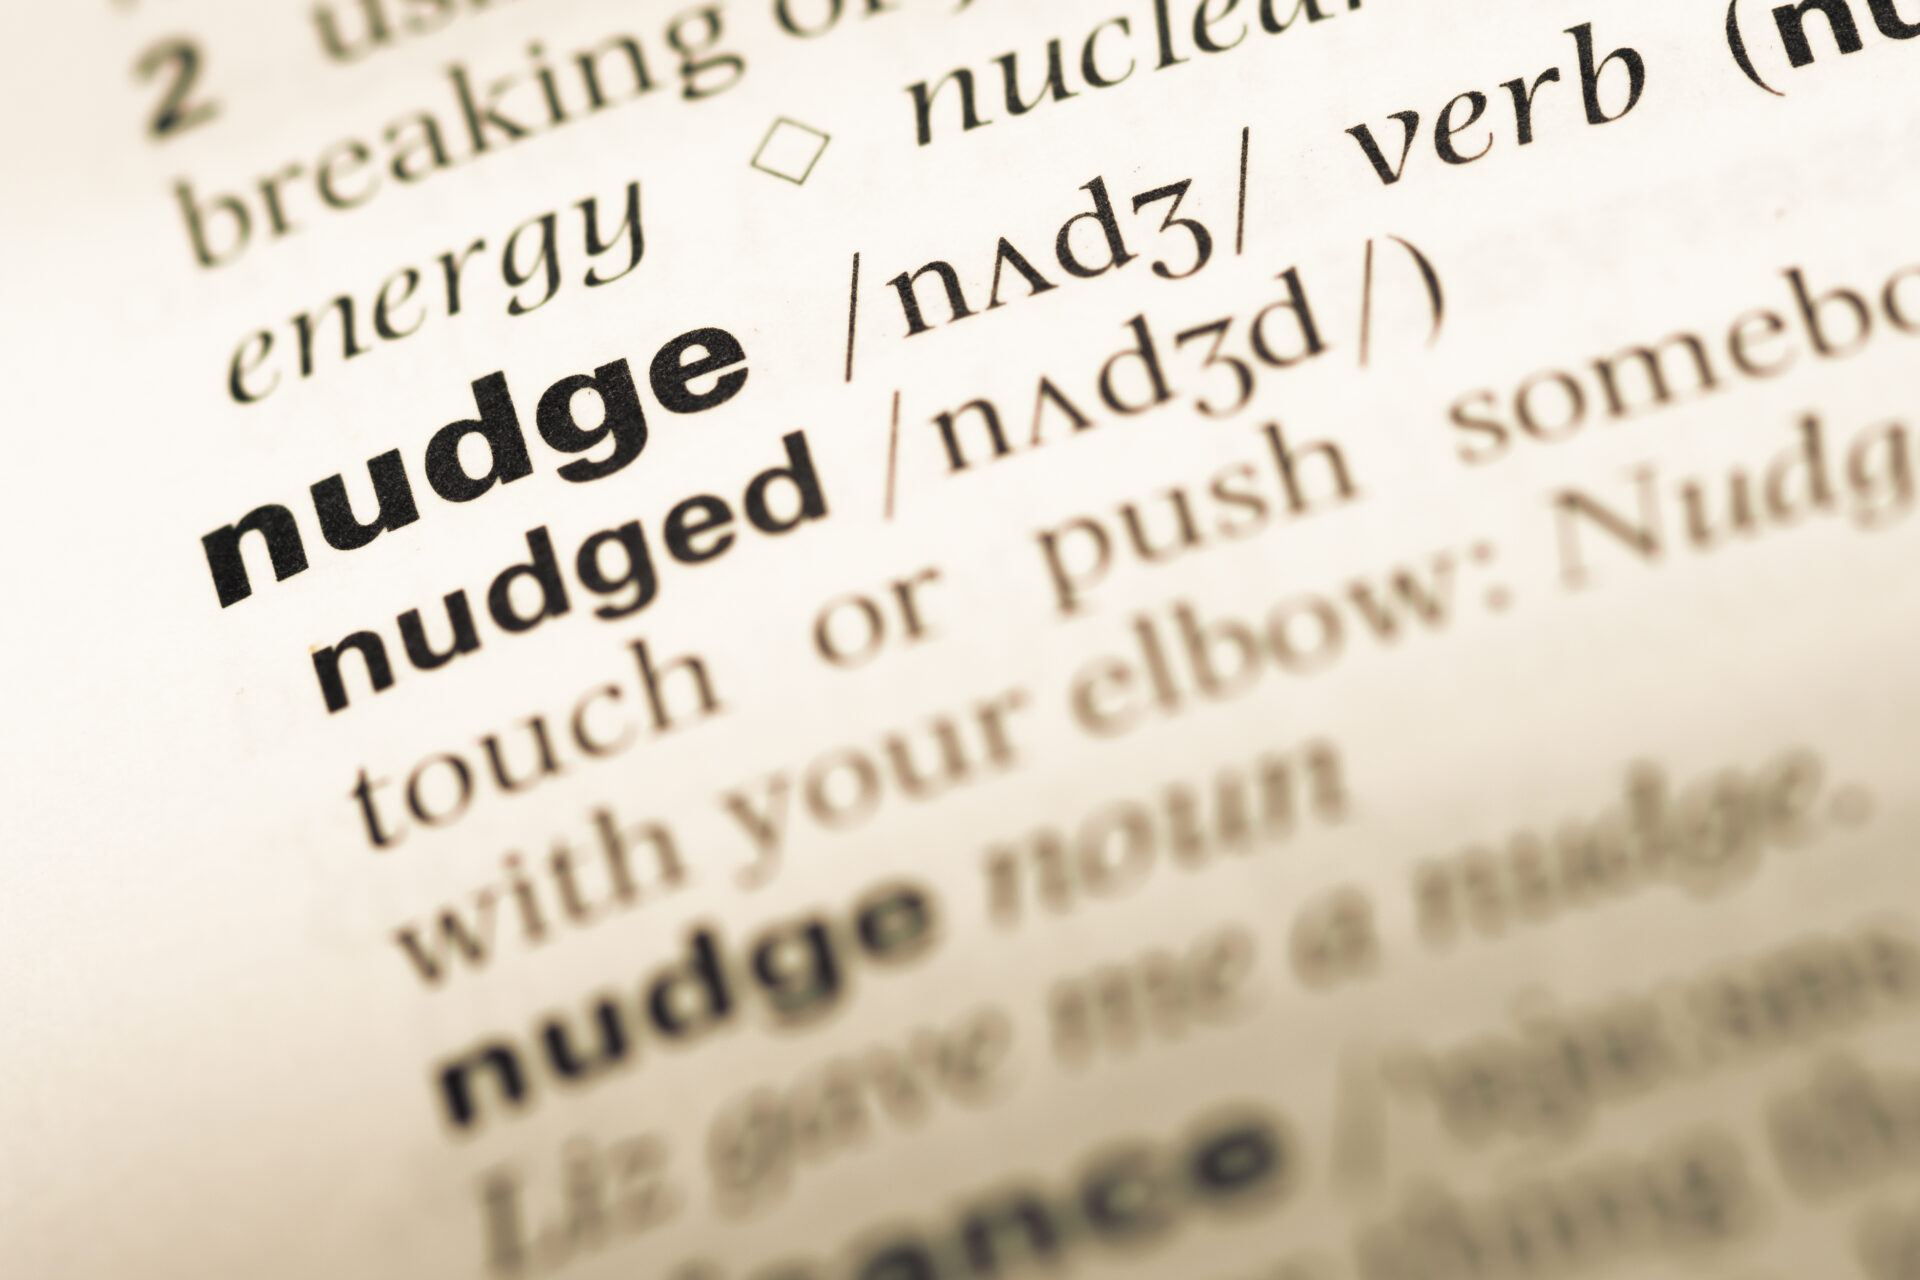 Nudging – Definition